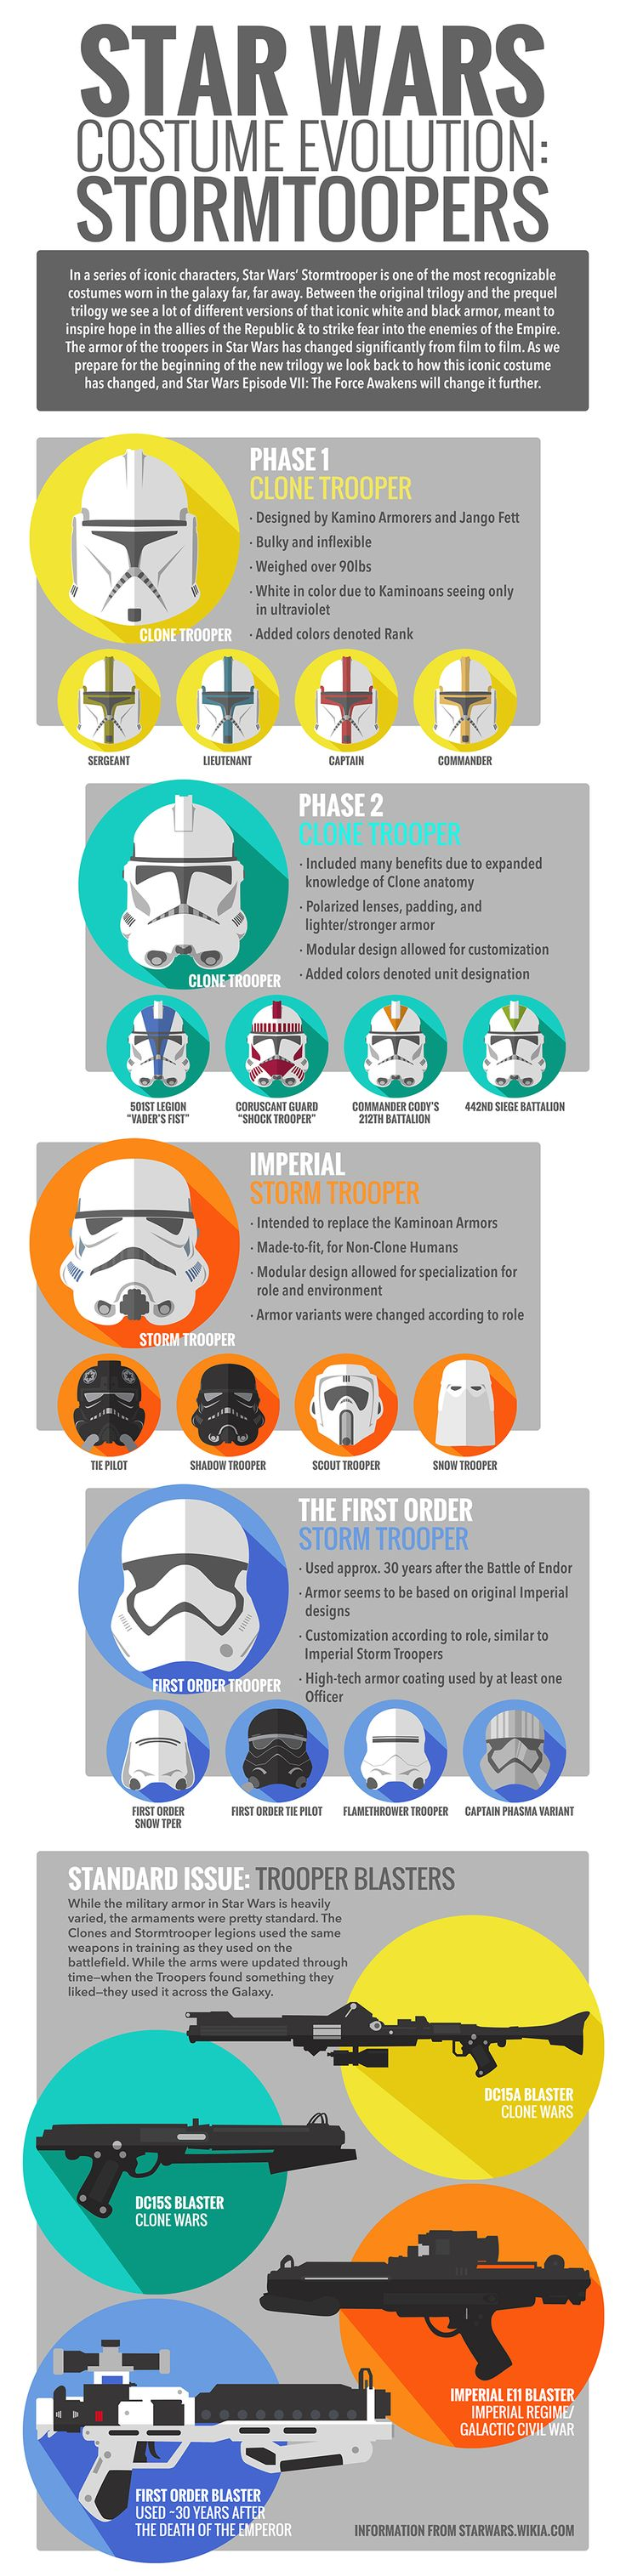 star-wars-costume-evolution-stormtroopers-infographic